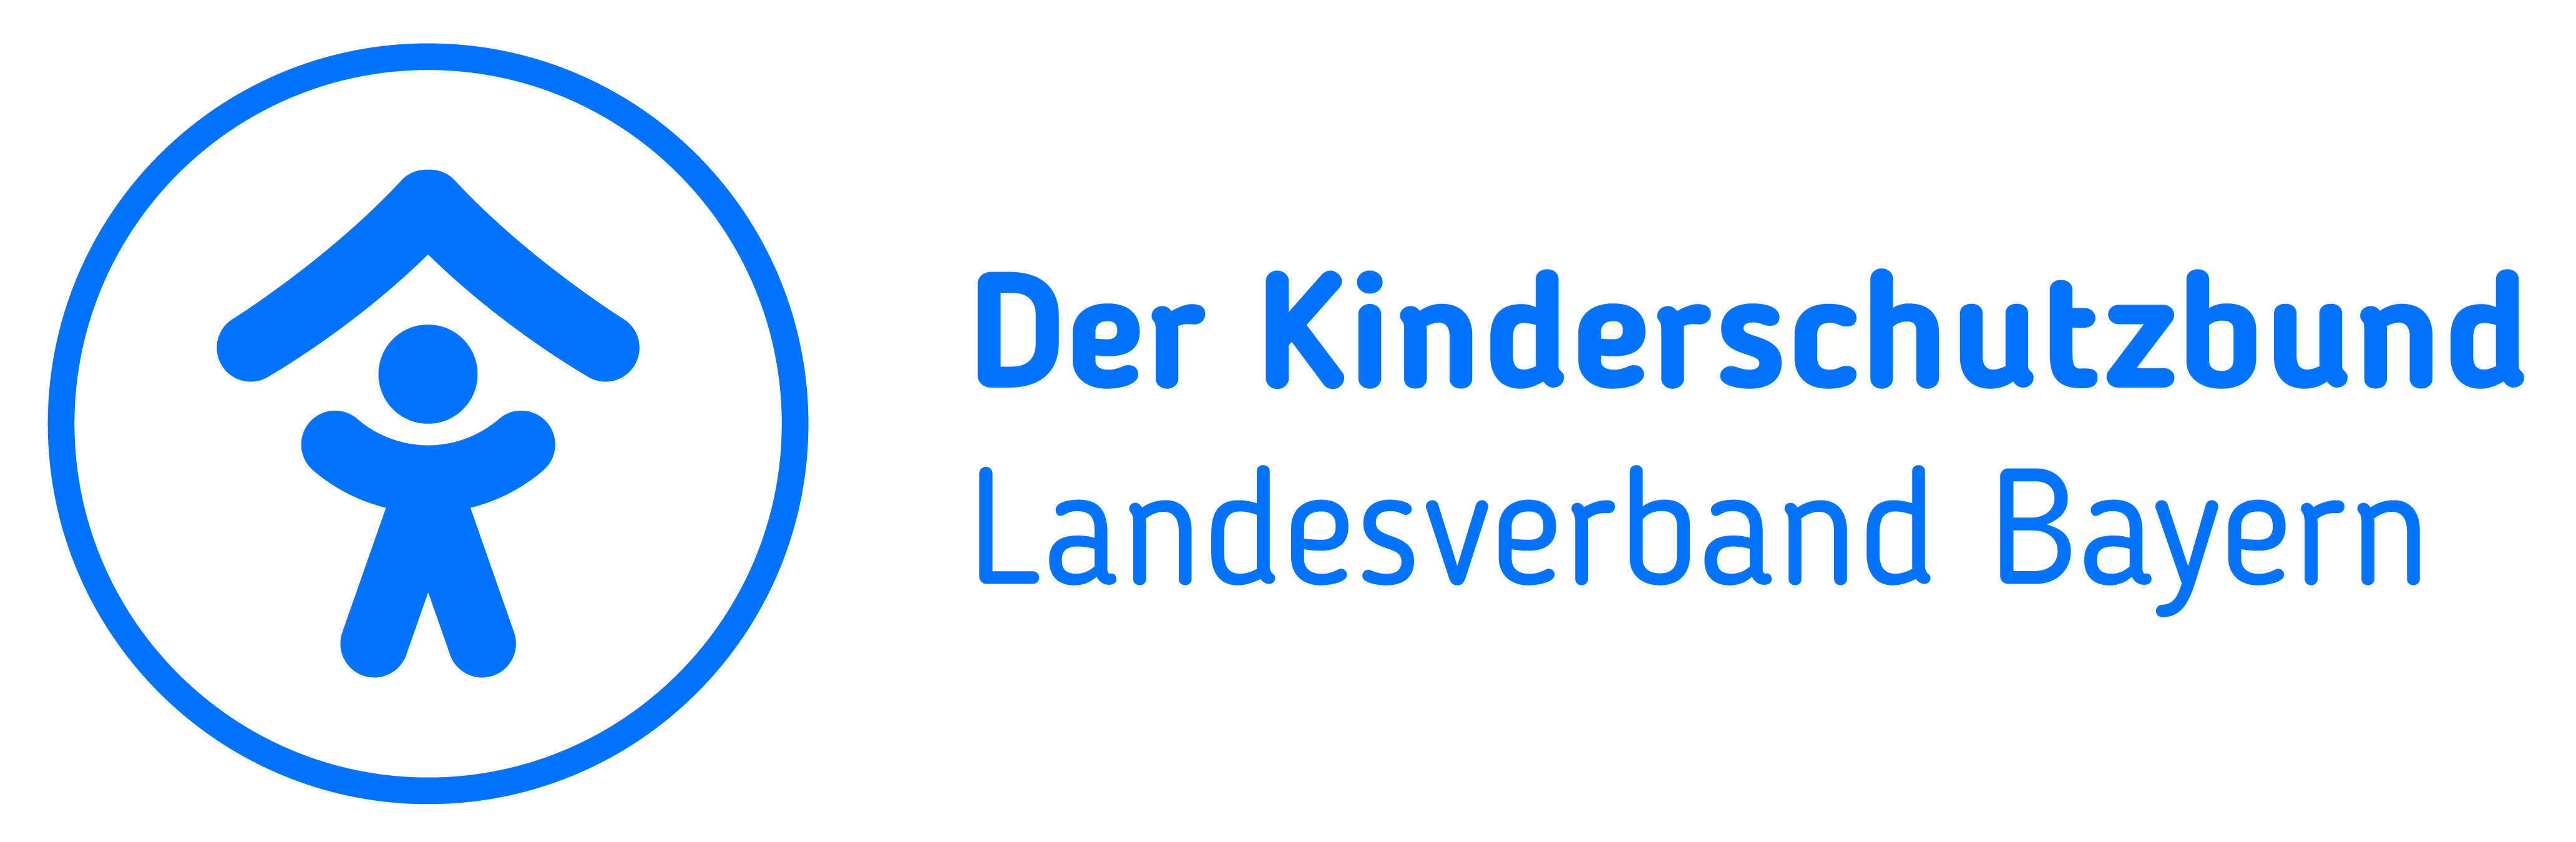 Der Kinderschutzbund Landesverband Bayern